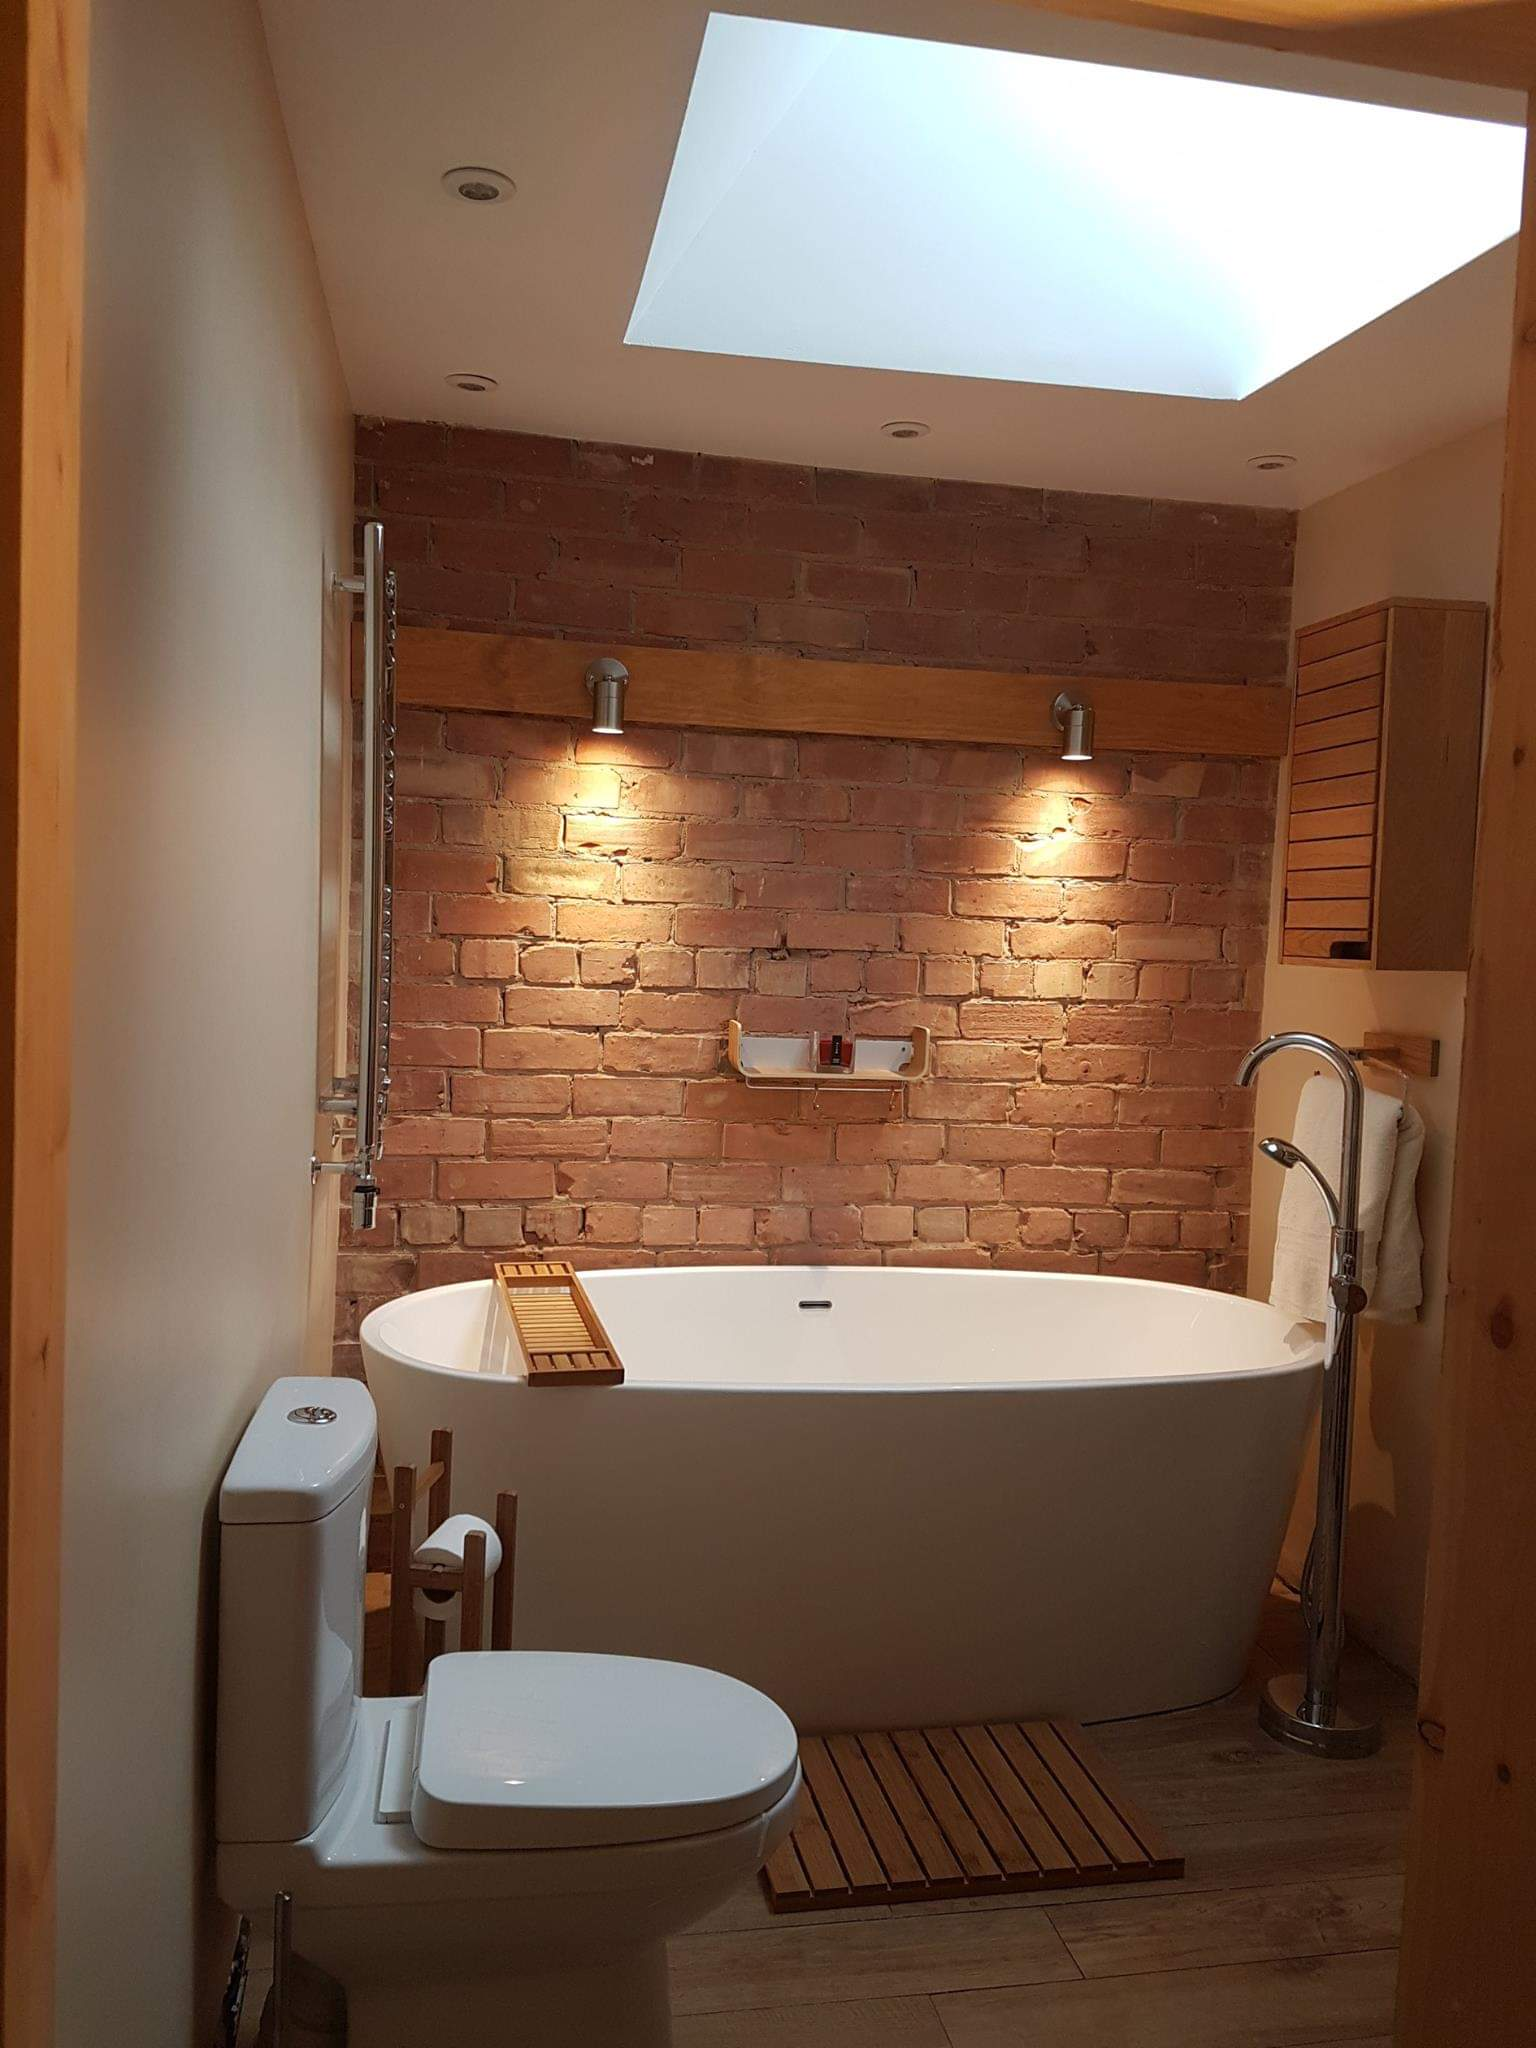 Bathroom Wall Lights Install, Hull, Hull Electrician, Hull Power Ltd